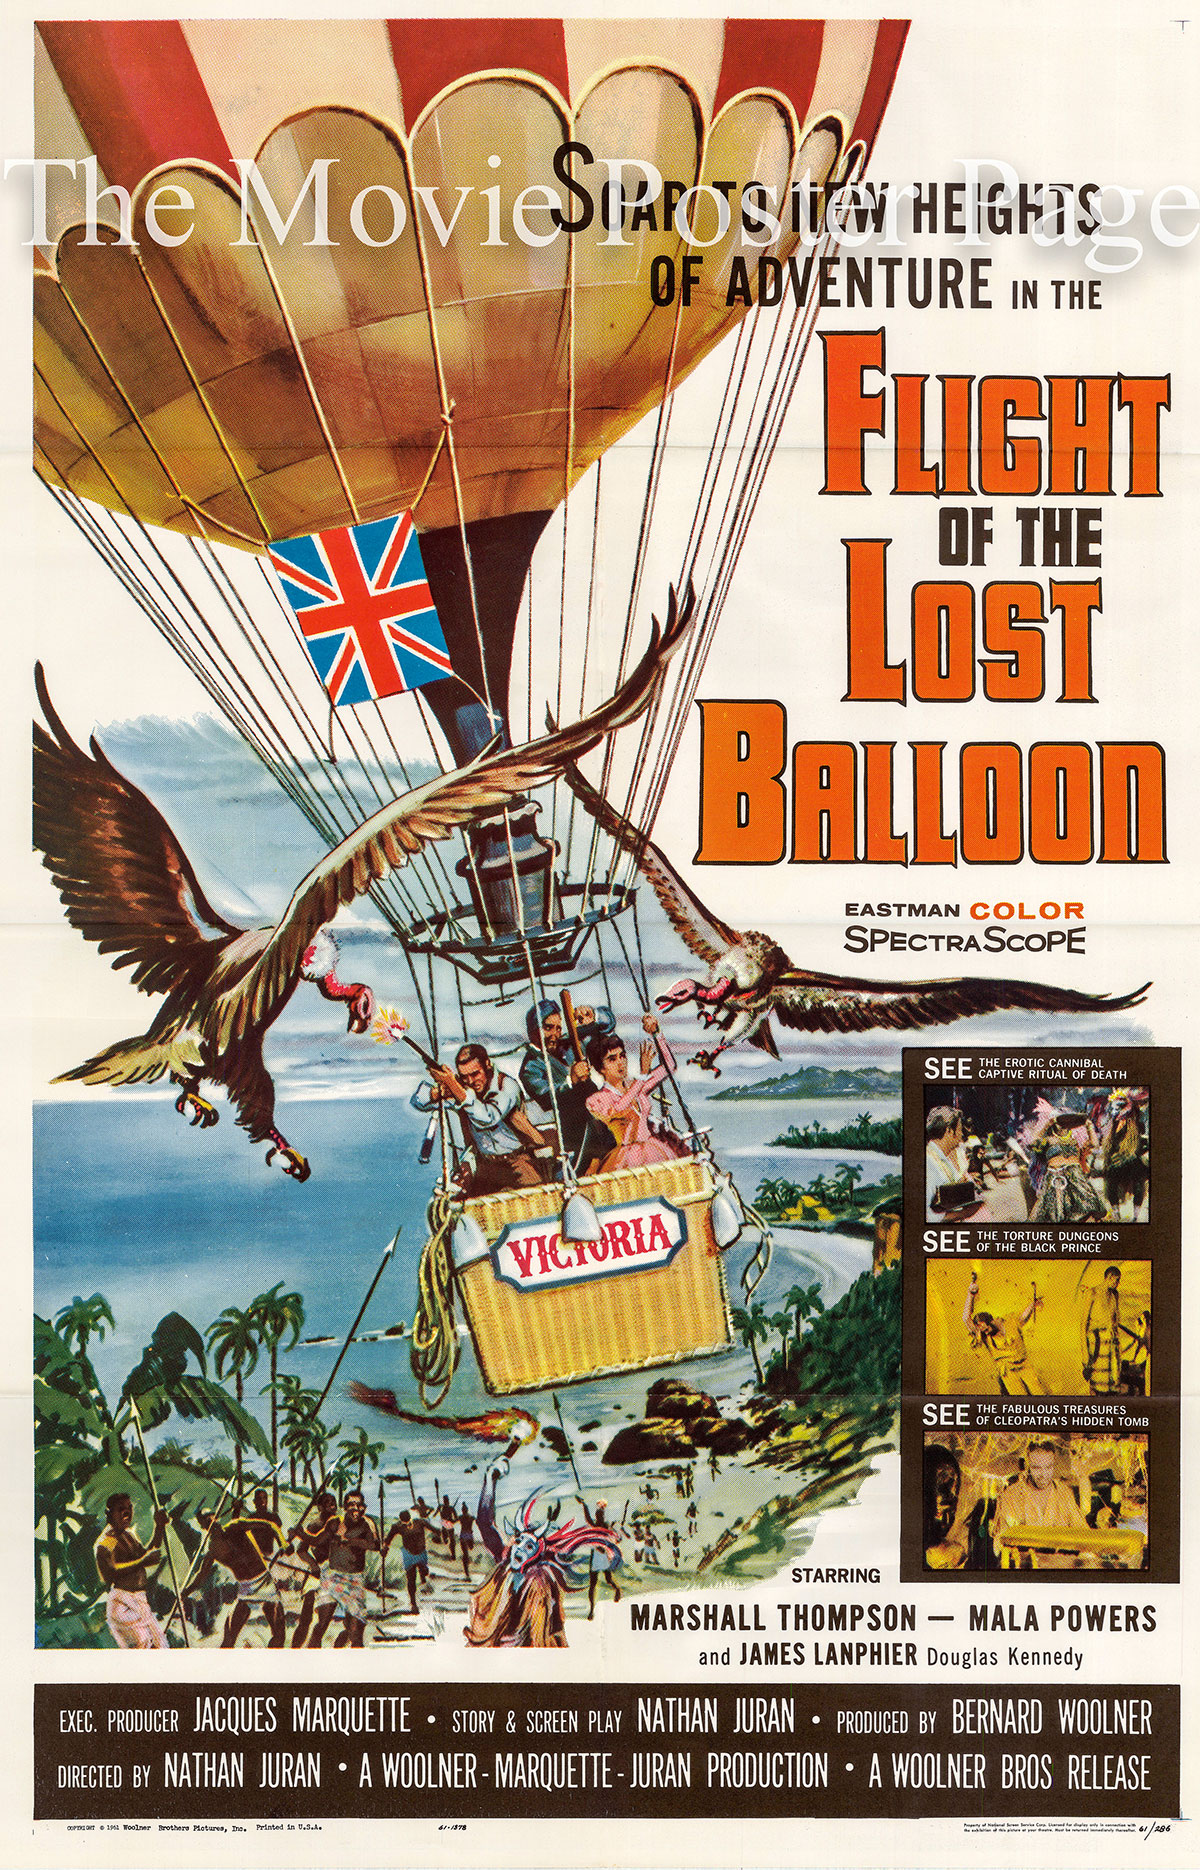 Pictured is a US one-sheet poster for the 1961 Nathan Juran film Flight of the Lost Balloon starring Marshall Thomnpson as Dr. Joseph Farady.